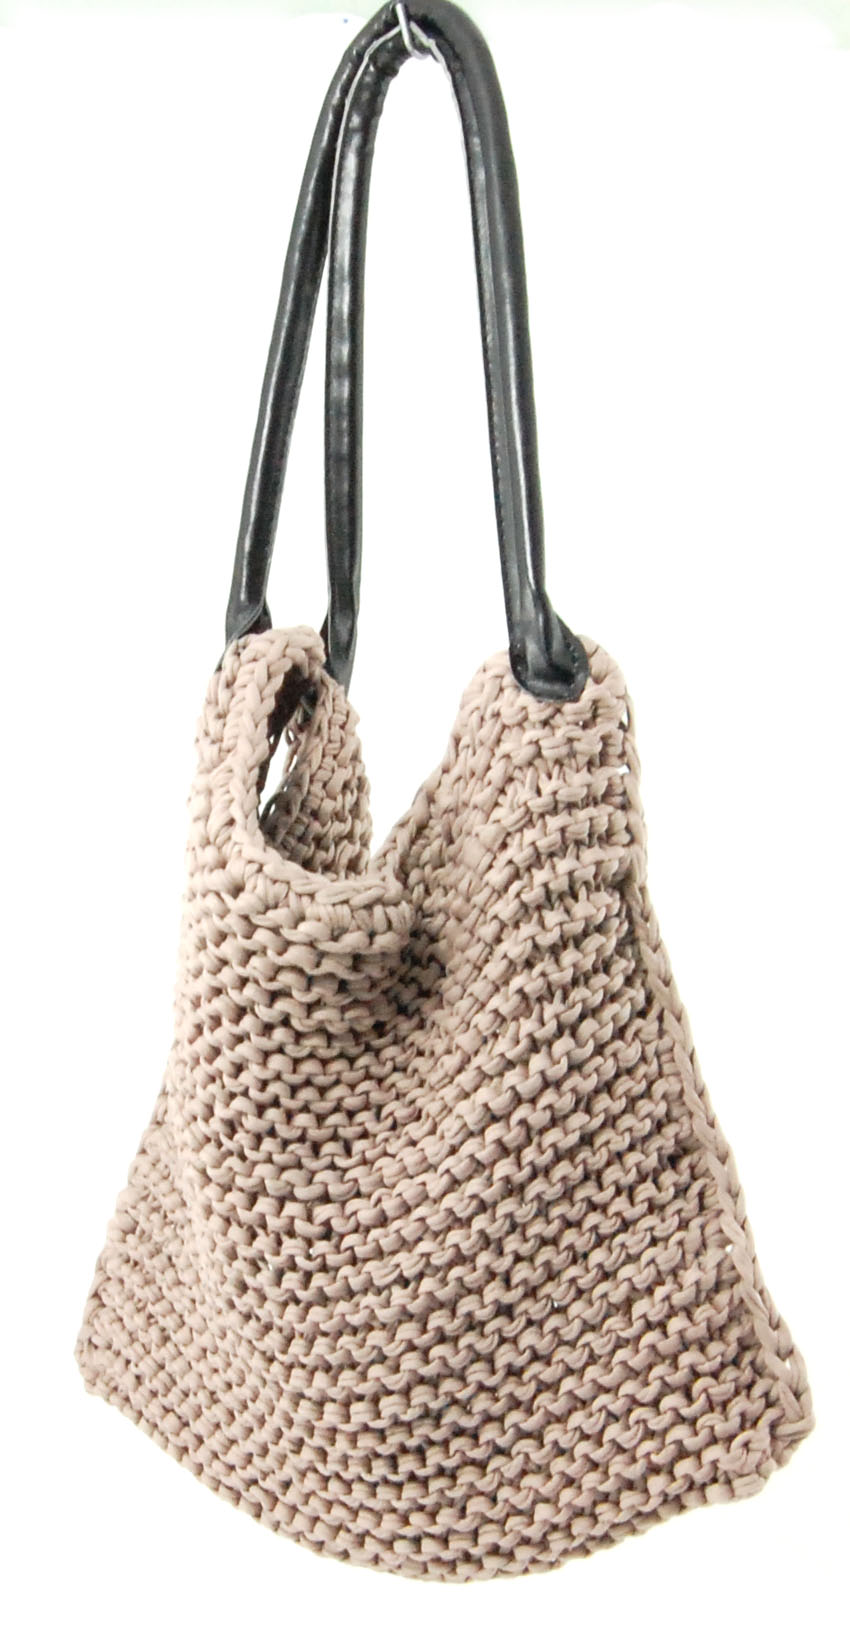 Knitted bag tutorial LVLY